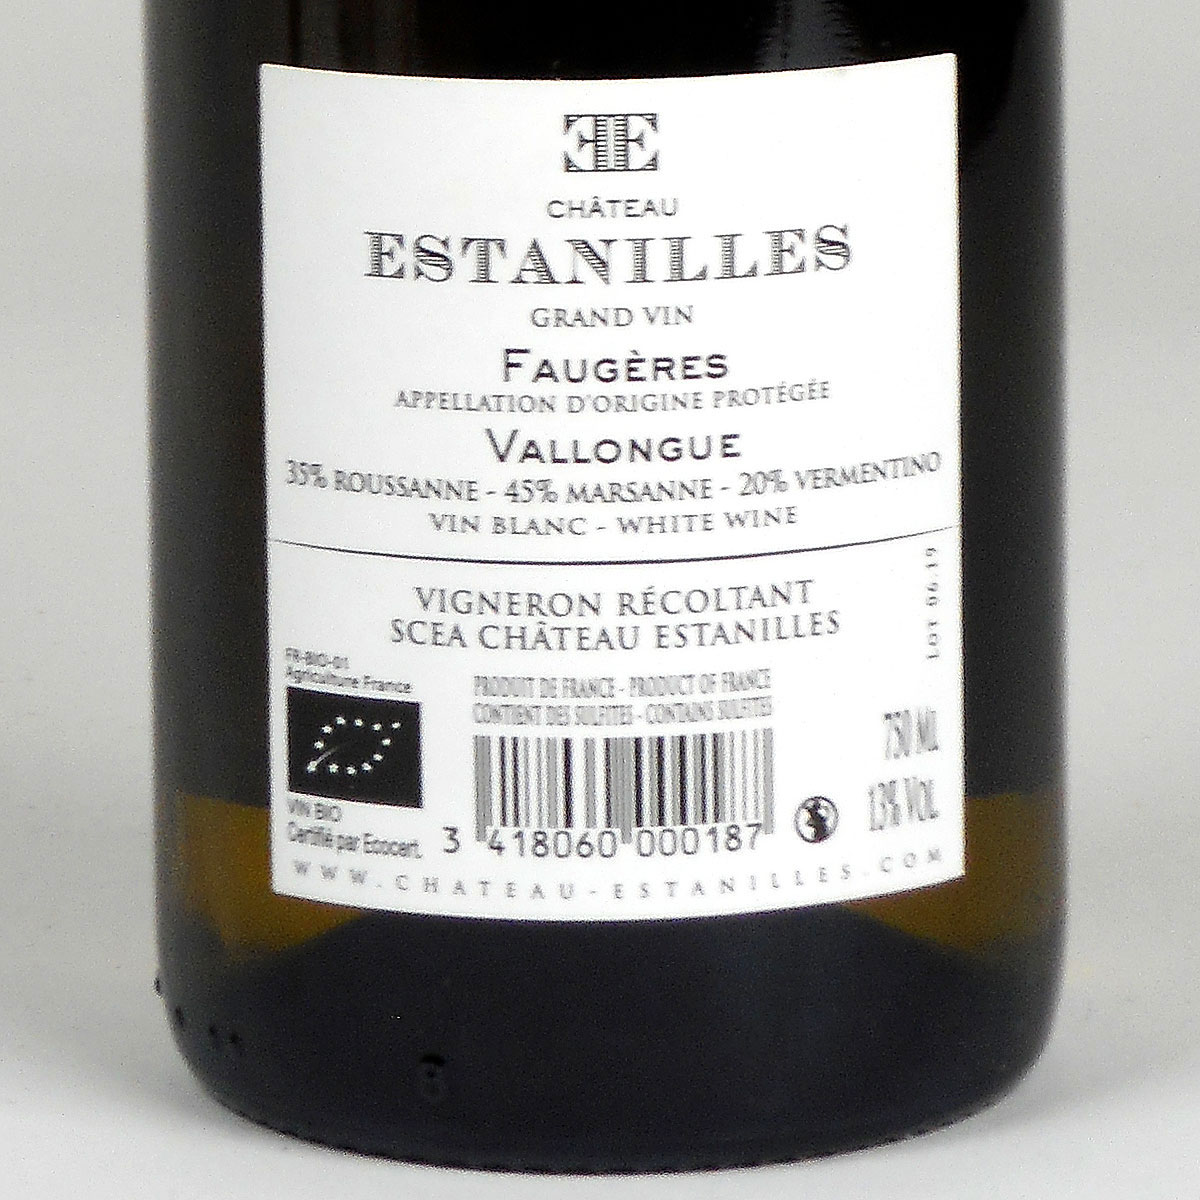 Faugères: Château Estanilles 'Vallongue' Blanc 2019 - Bottle Rear Label